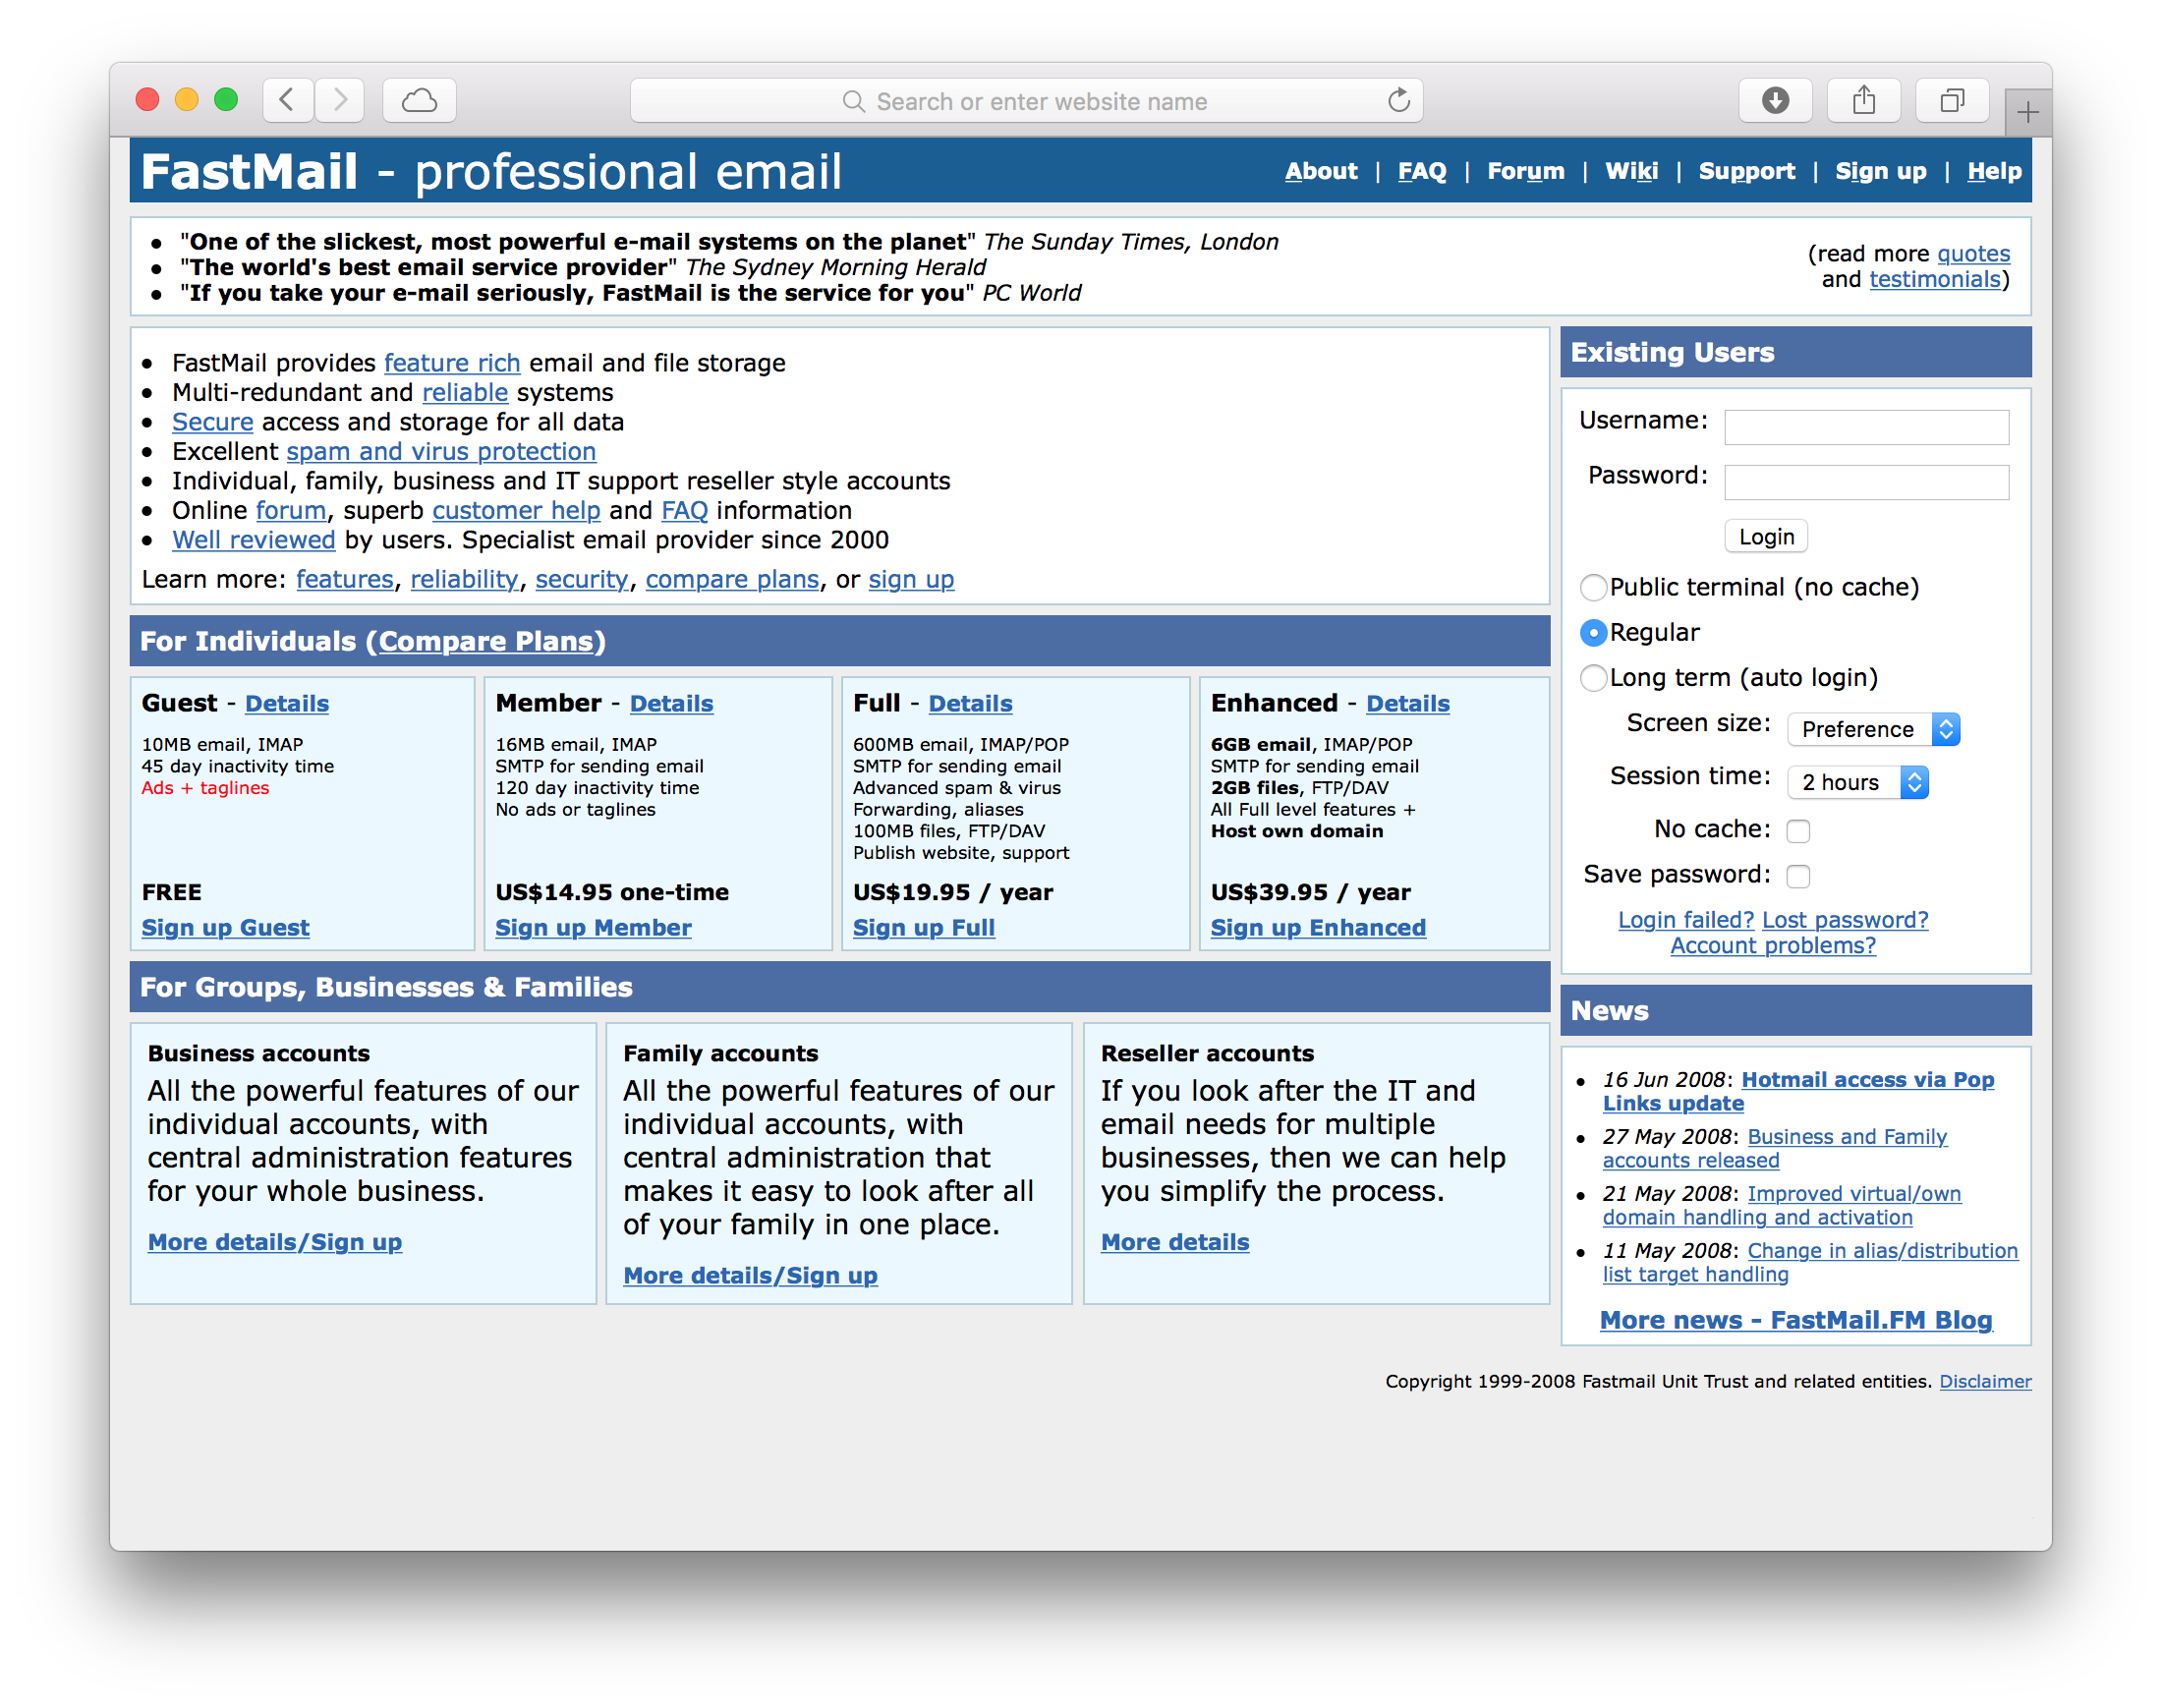 Dec 2: FastMail's Homepage Through The Ages